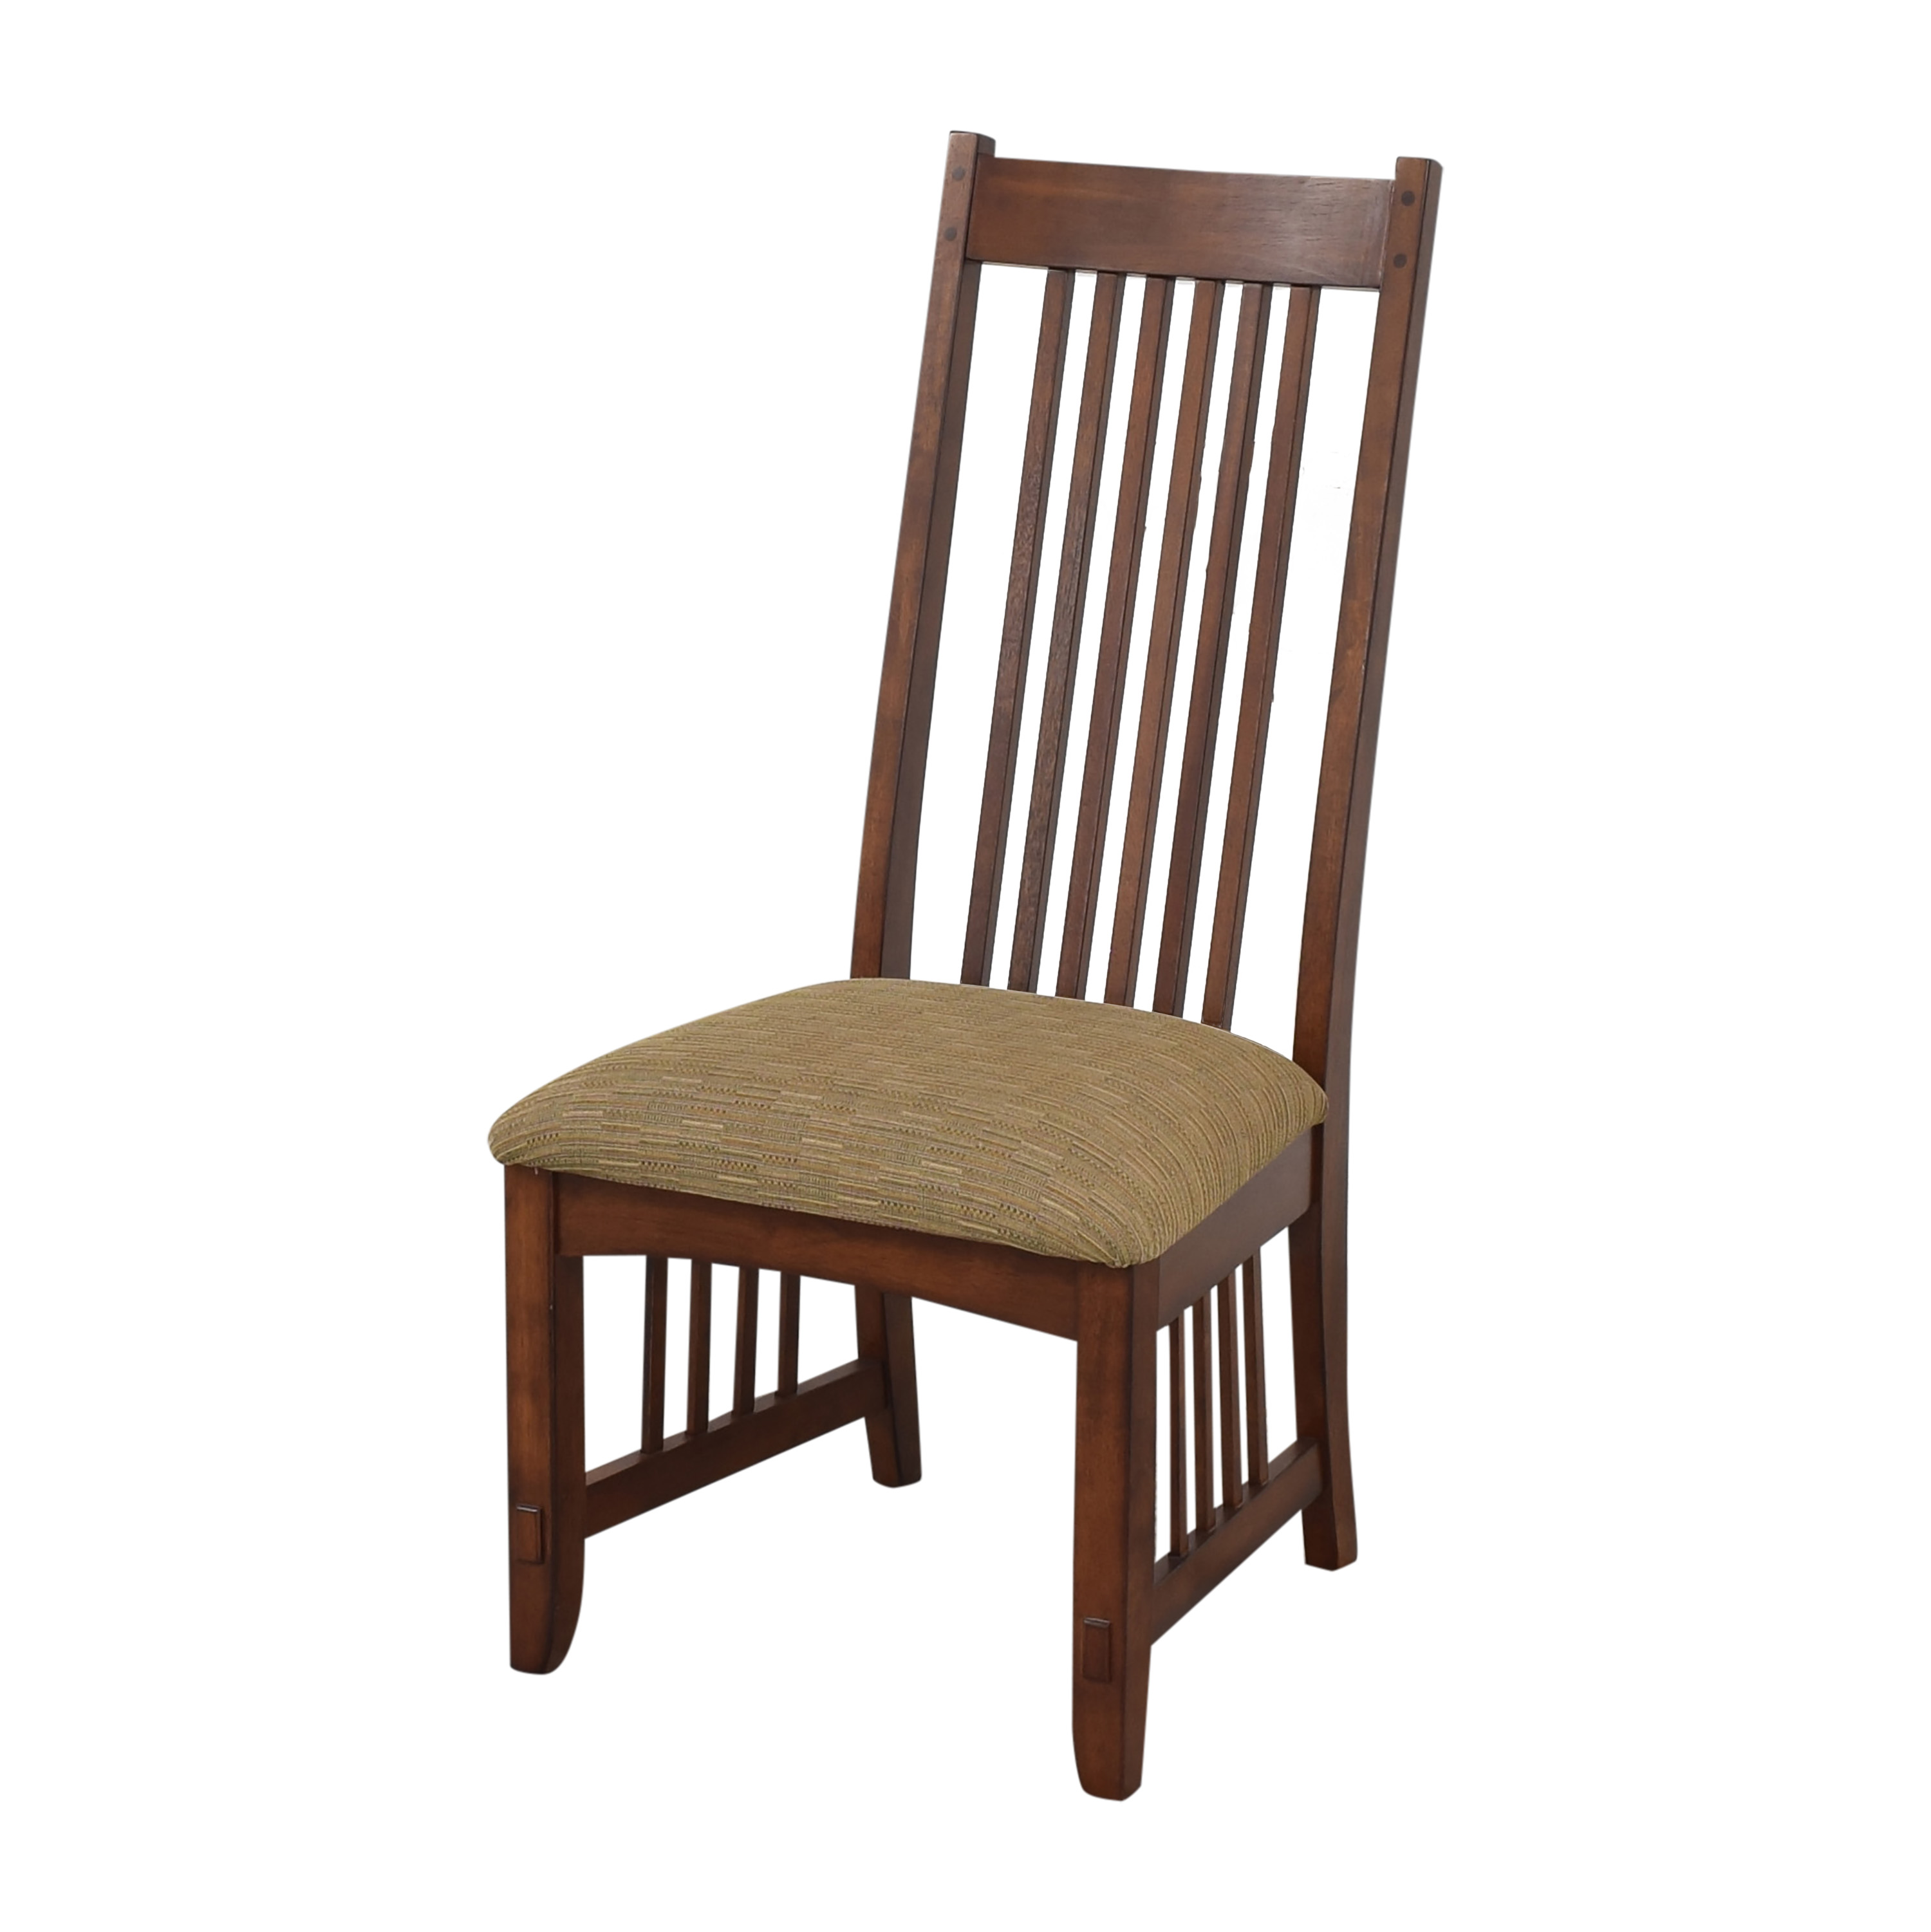 Green River Furniture Green River Mission Style Dining Chairs for sale